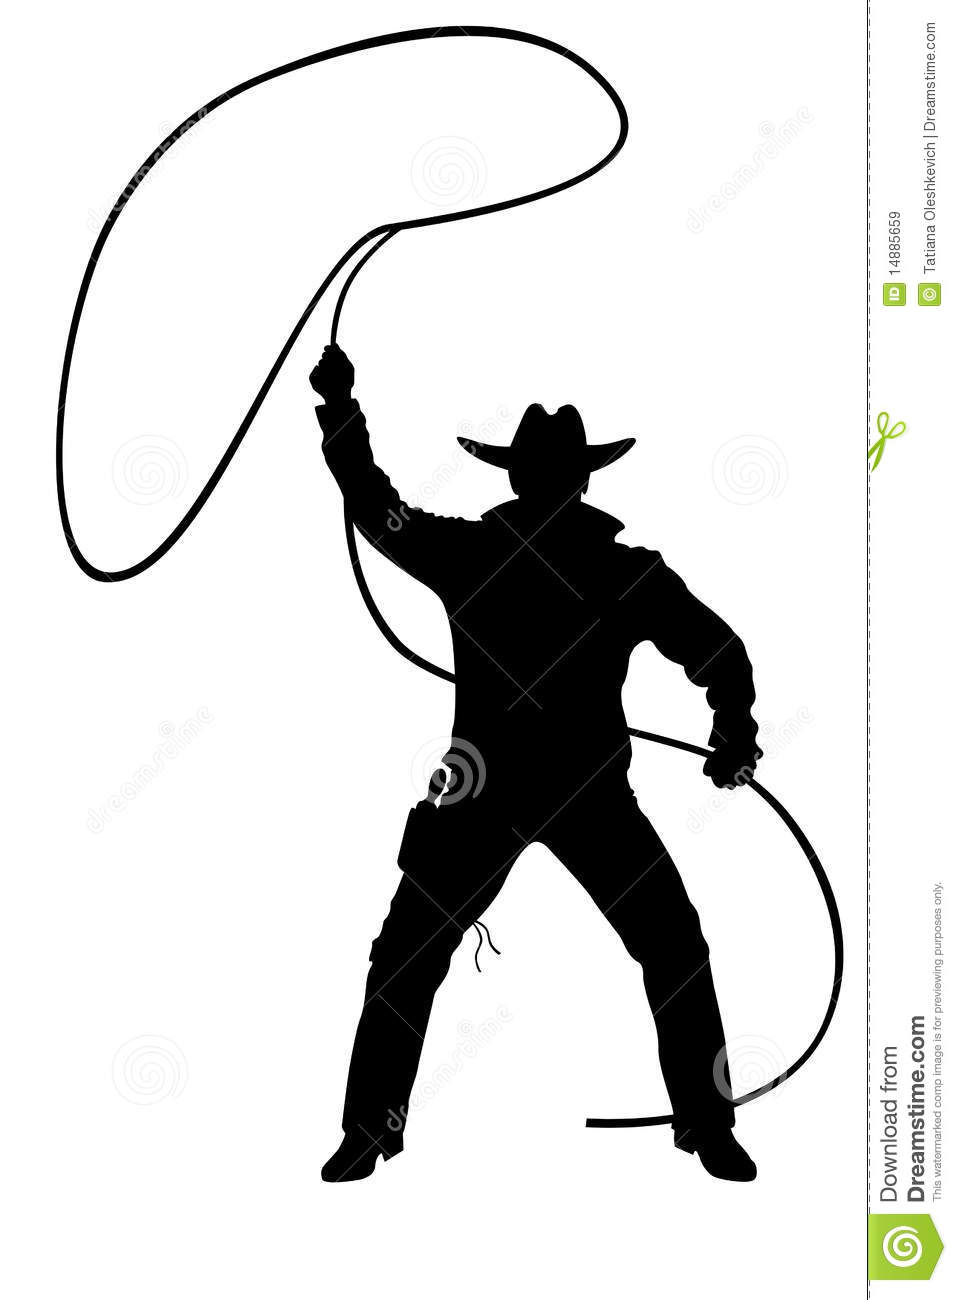 Illustration Of Cowboy With Lasso Royalty Free Stock Images - Image ...